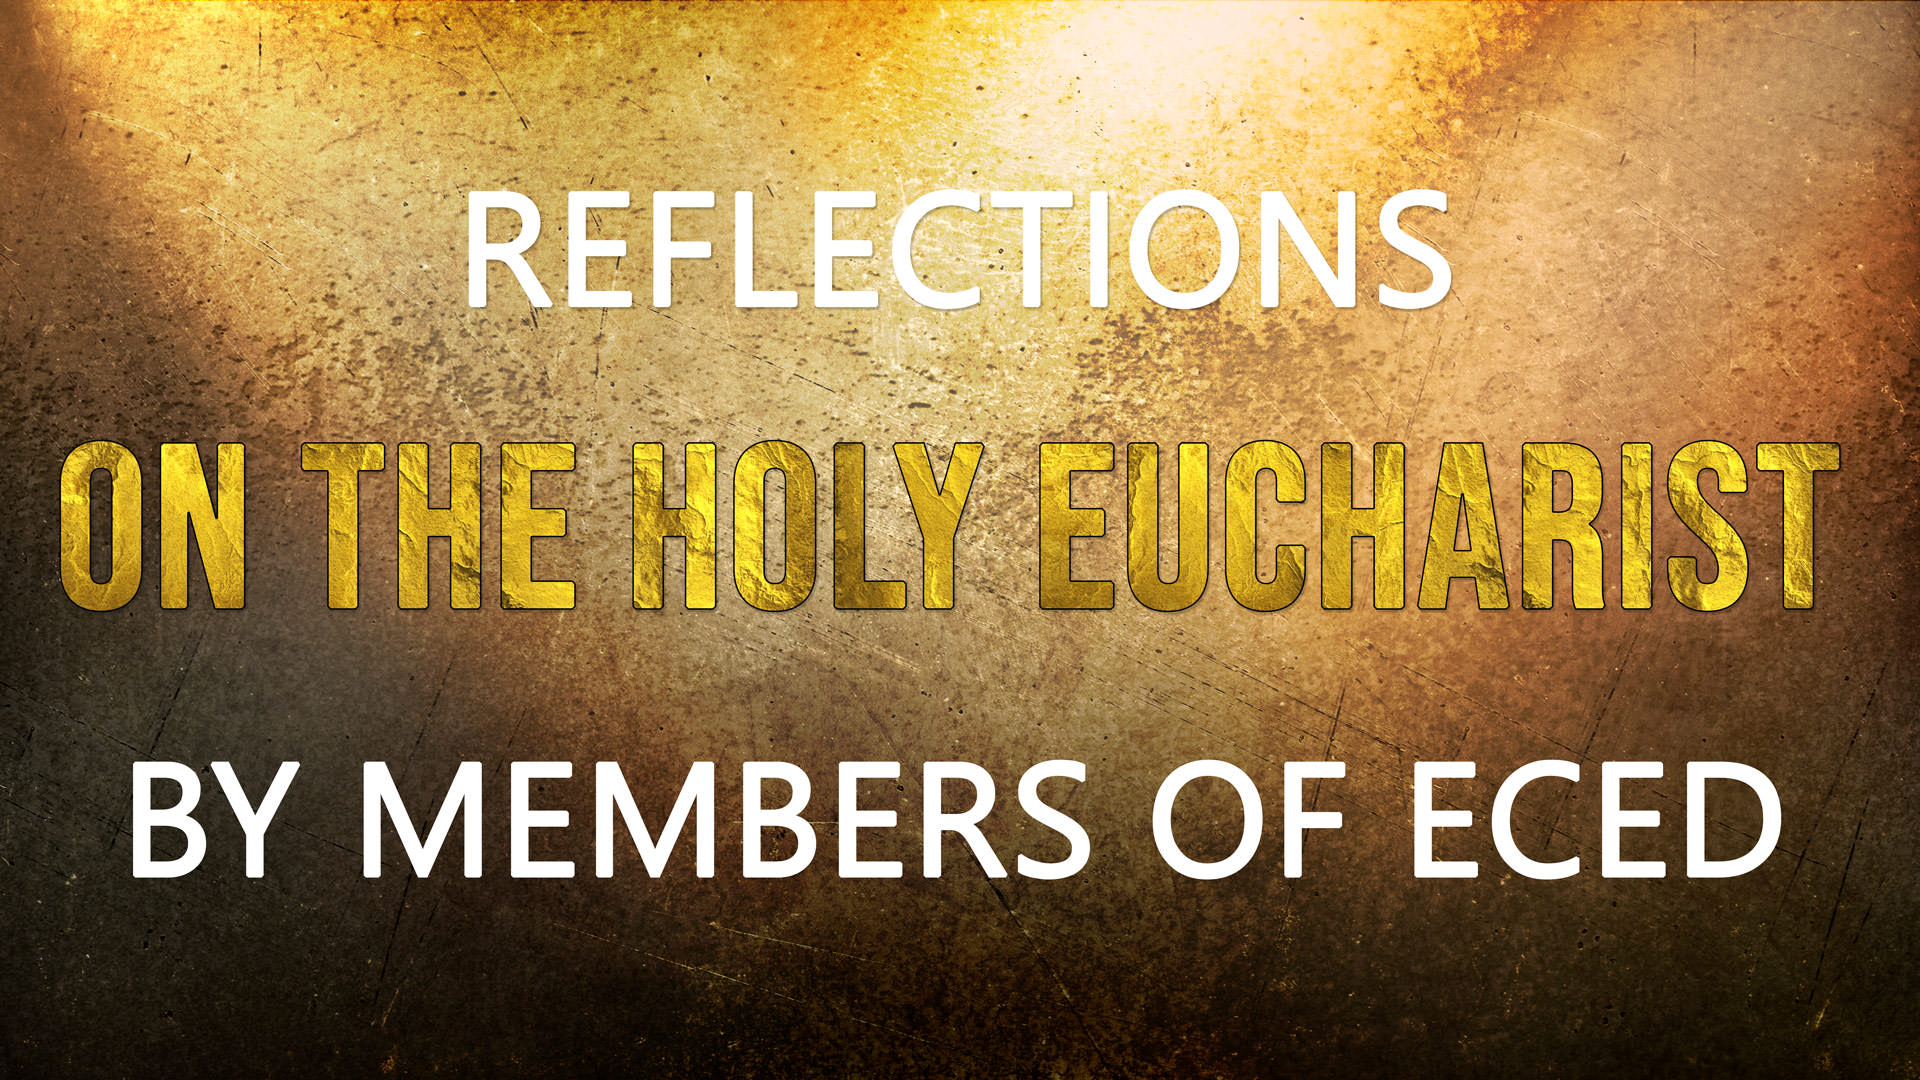 The New Testament and the Holy Eucharist